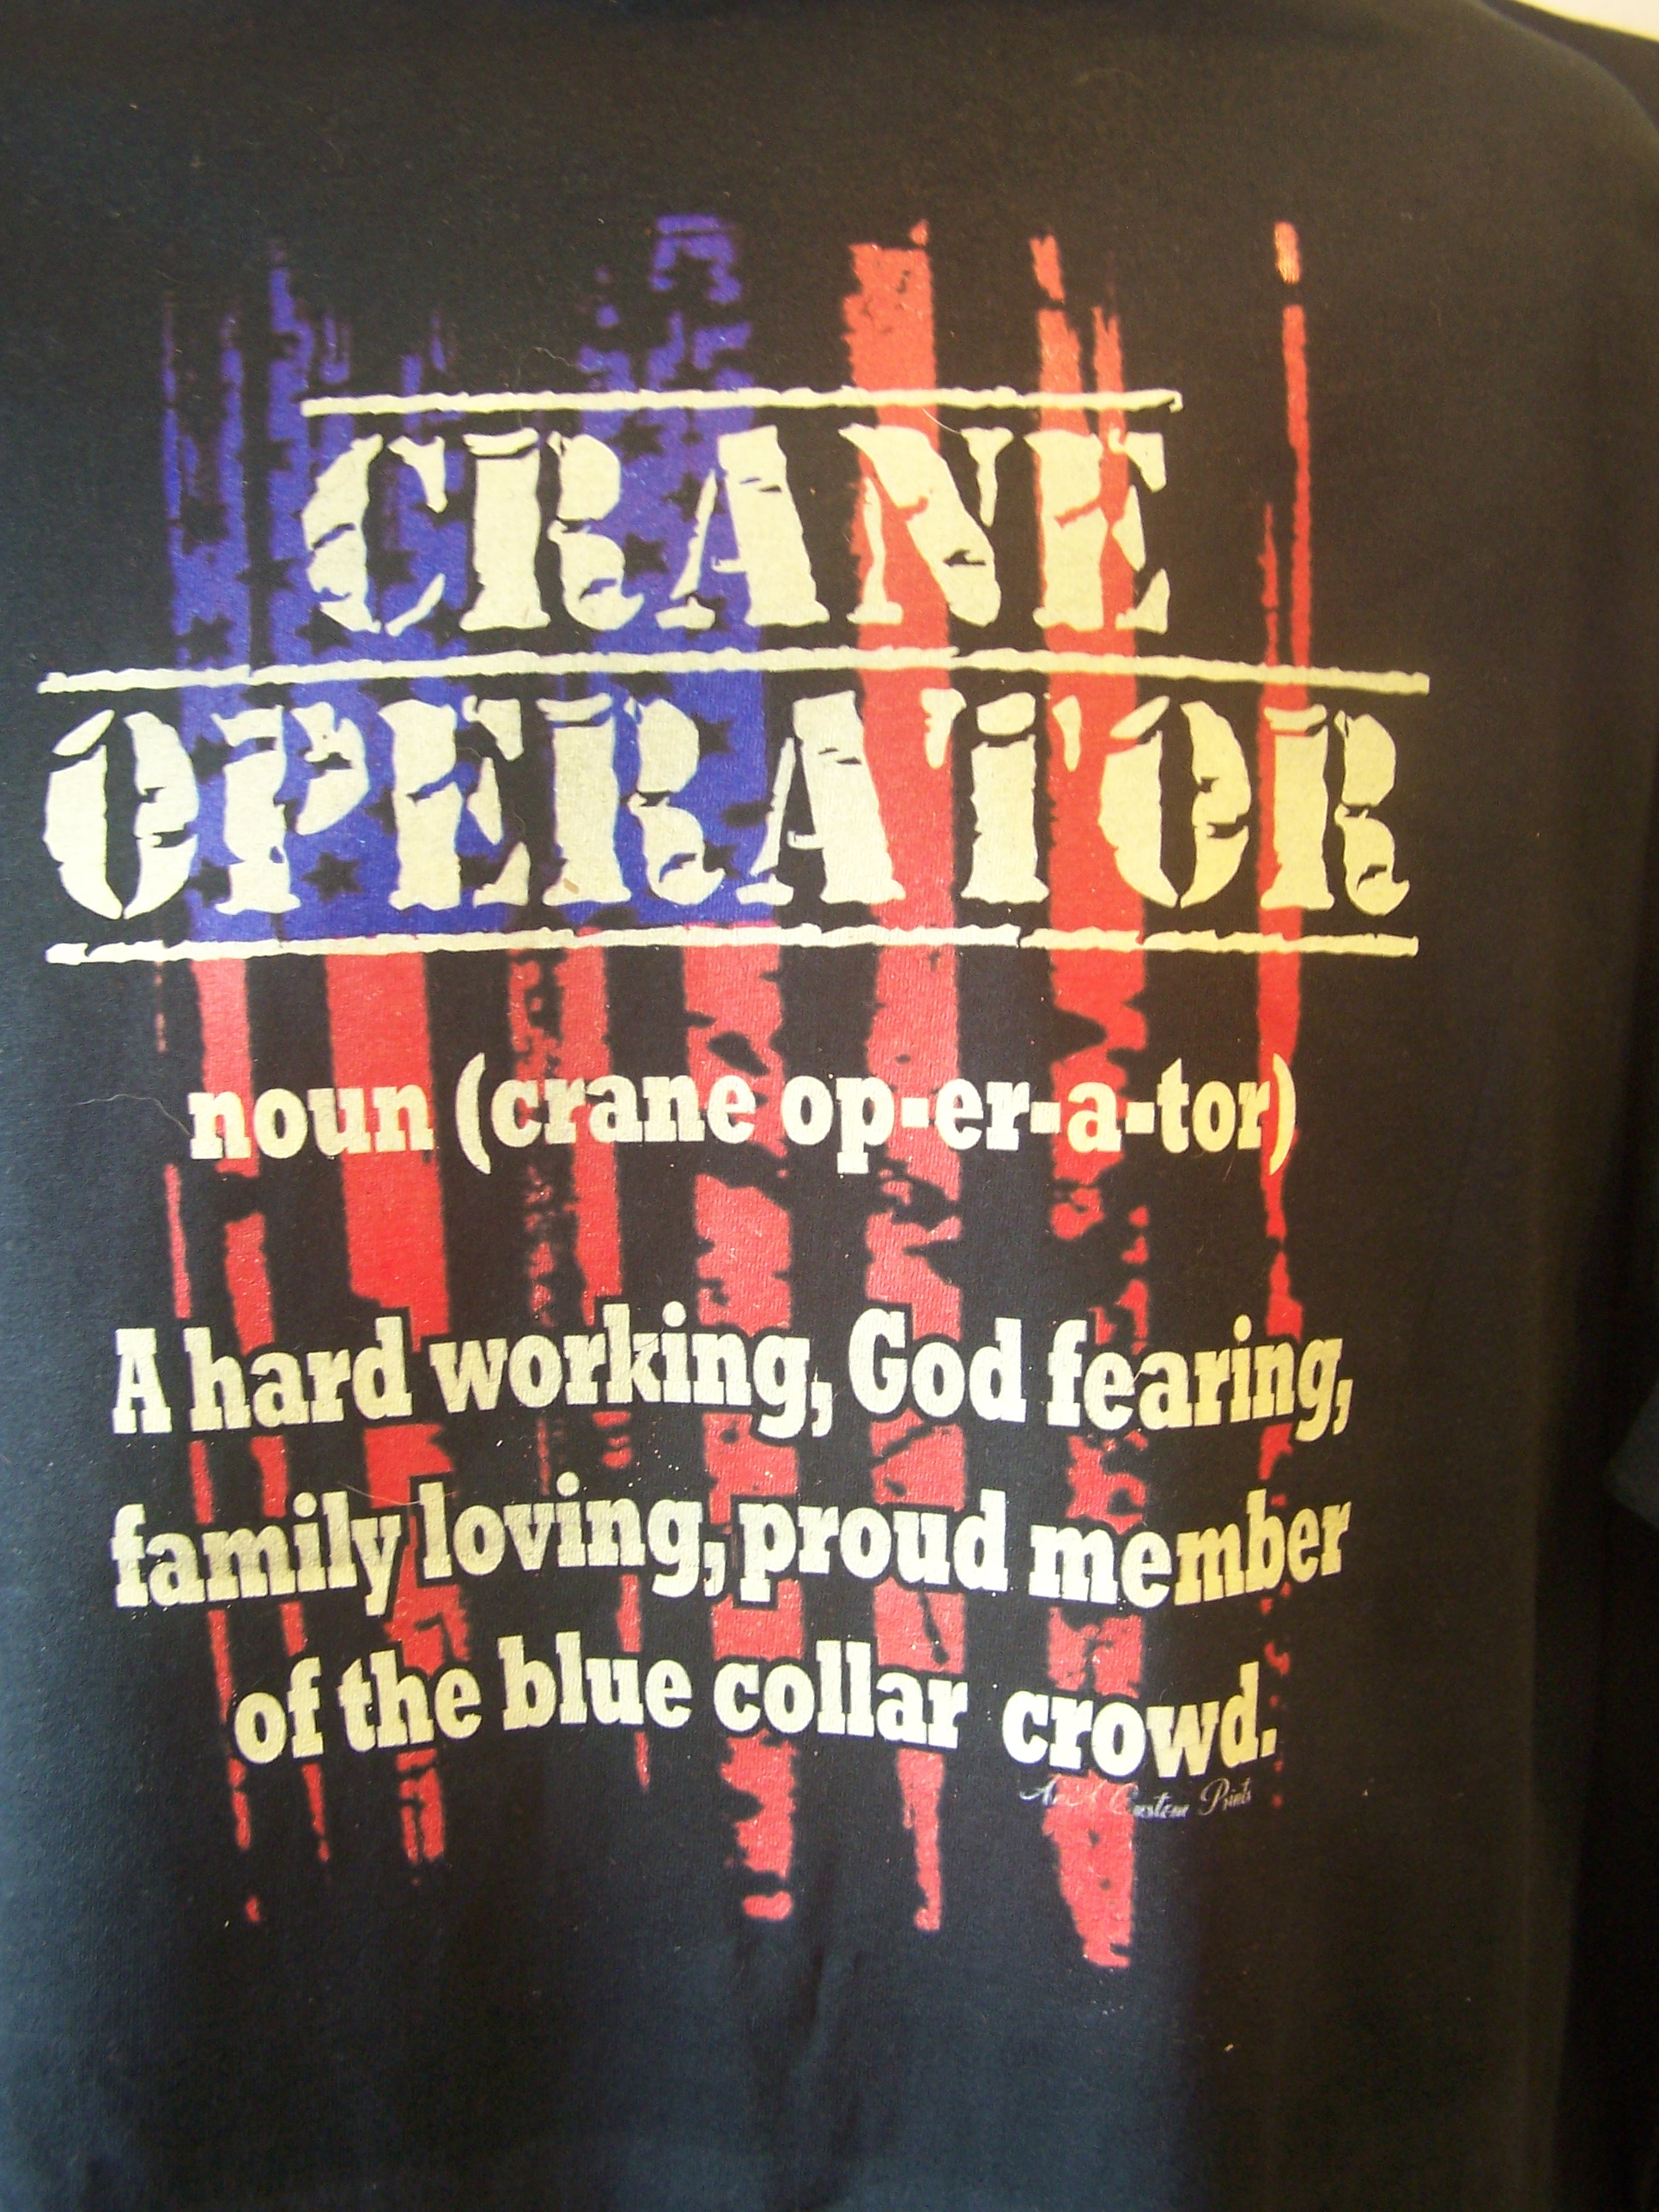 Crane Operator (noun) with Flag